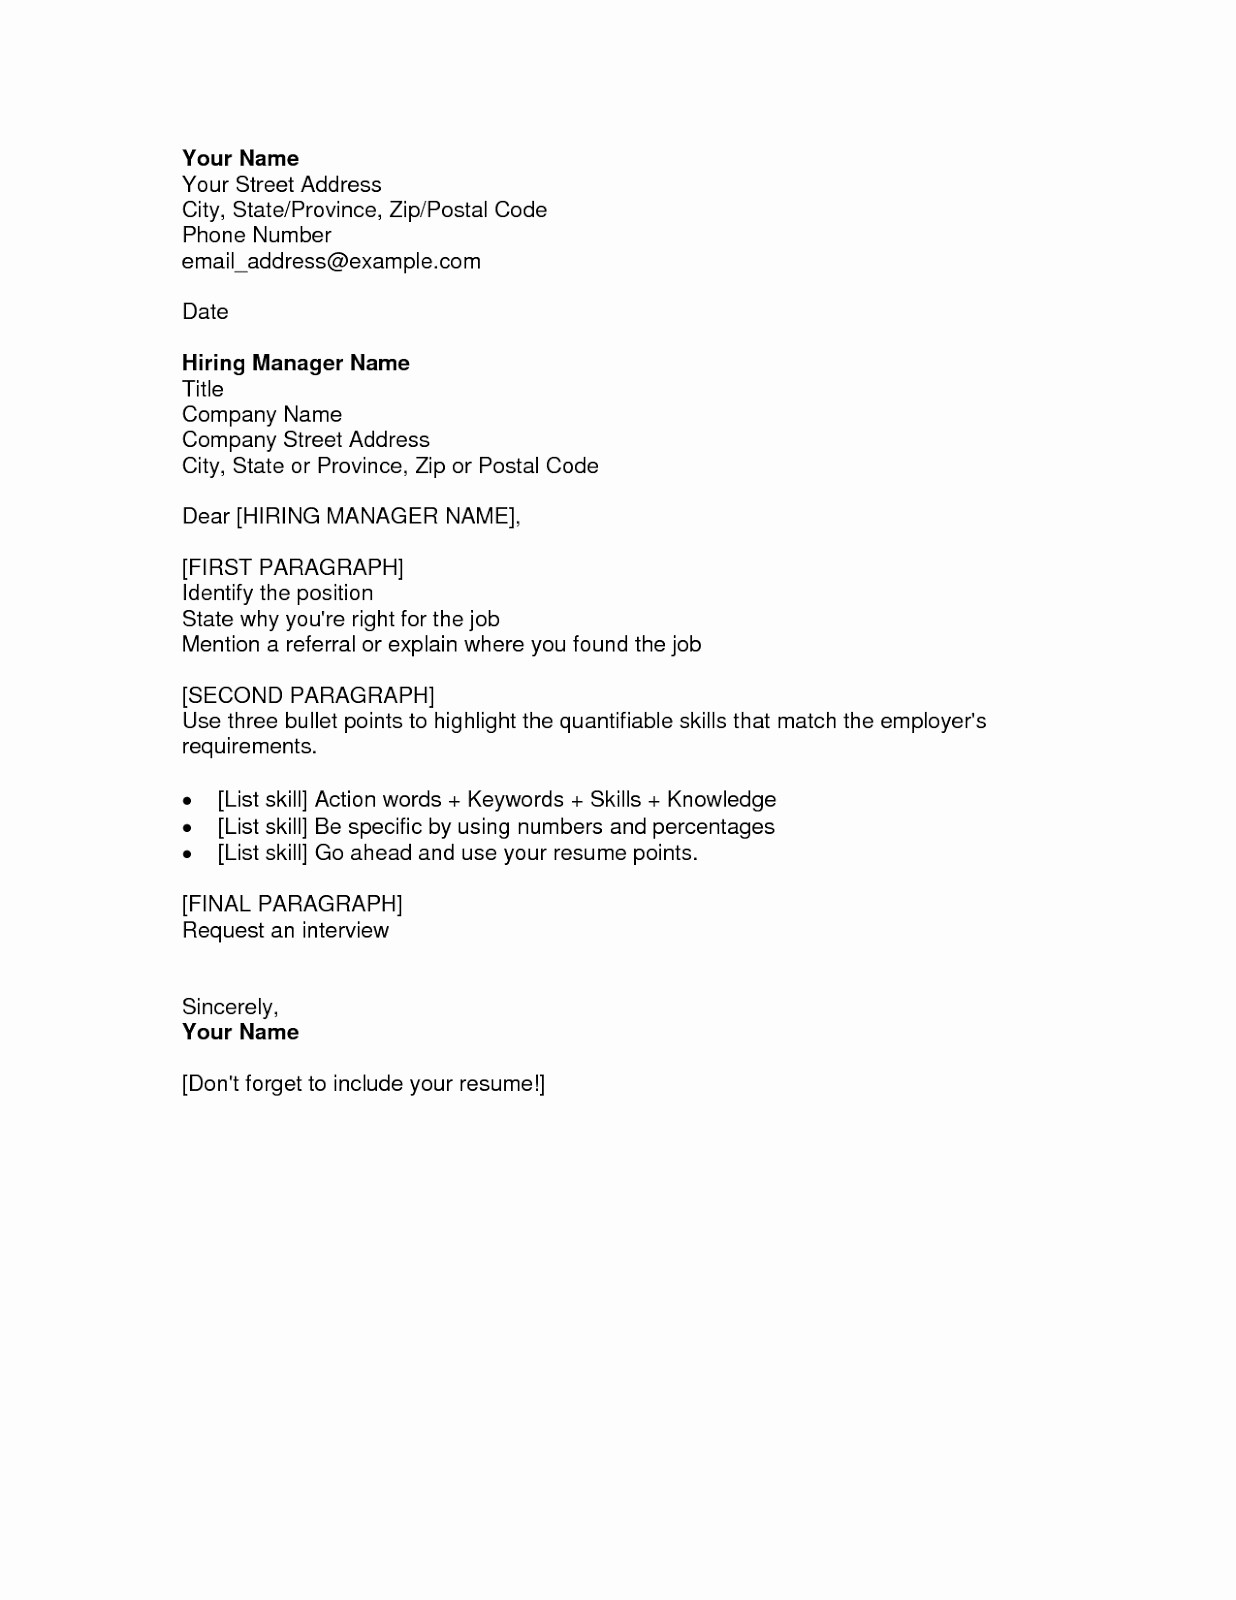 Free Resume Cover Letter Template Beautiful Free Cover Letter Samples for Resumes